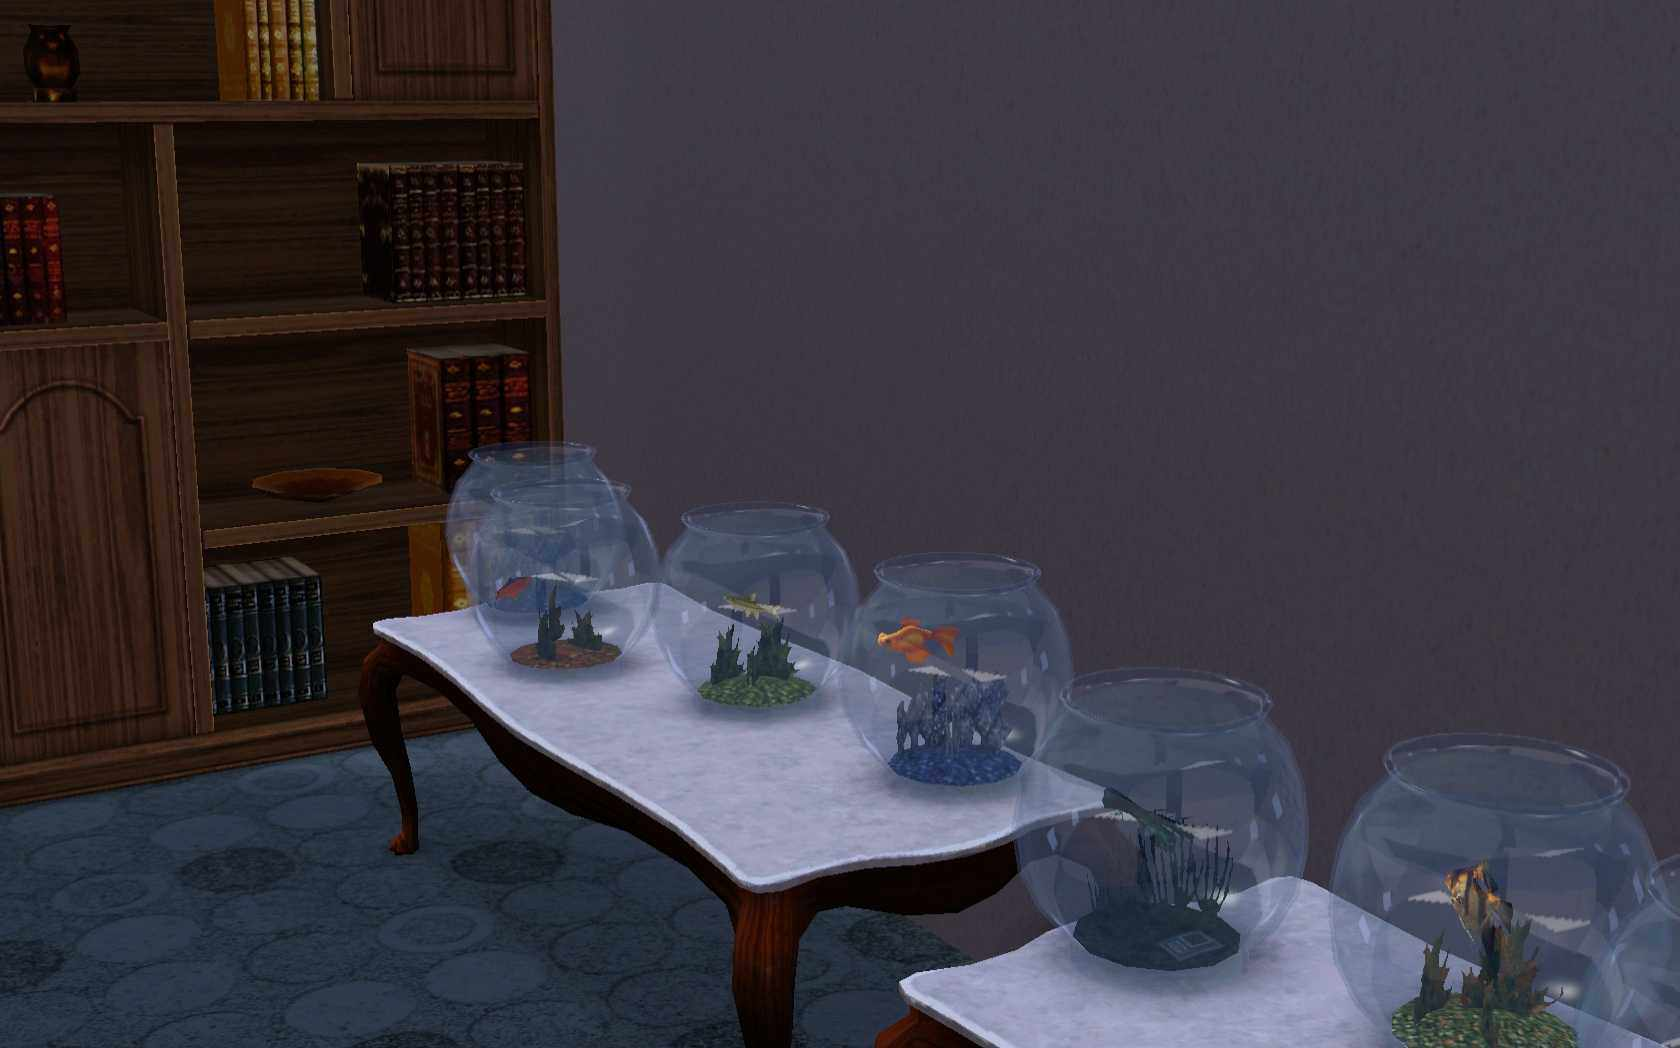 Fish xbox aquarium - An Angelfish Deathfish And Several Other In Aquariums In The Sims 3 Creating The